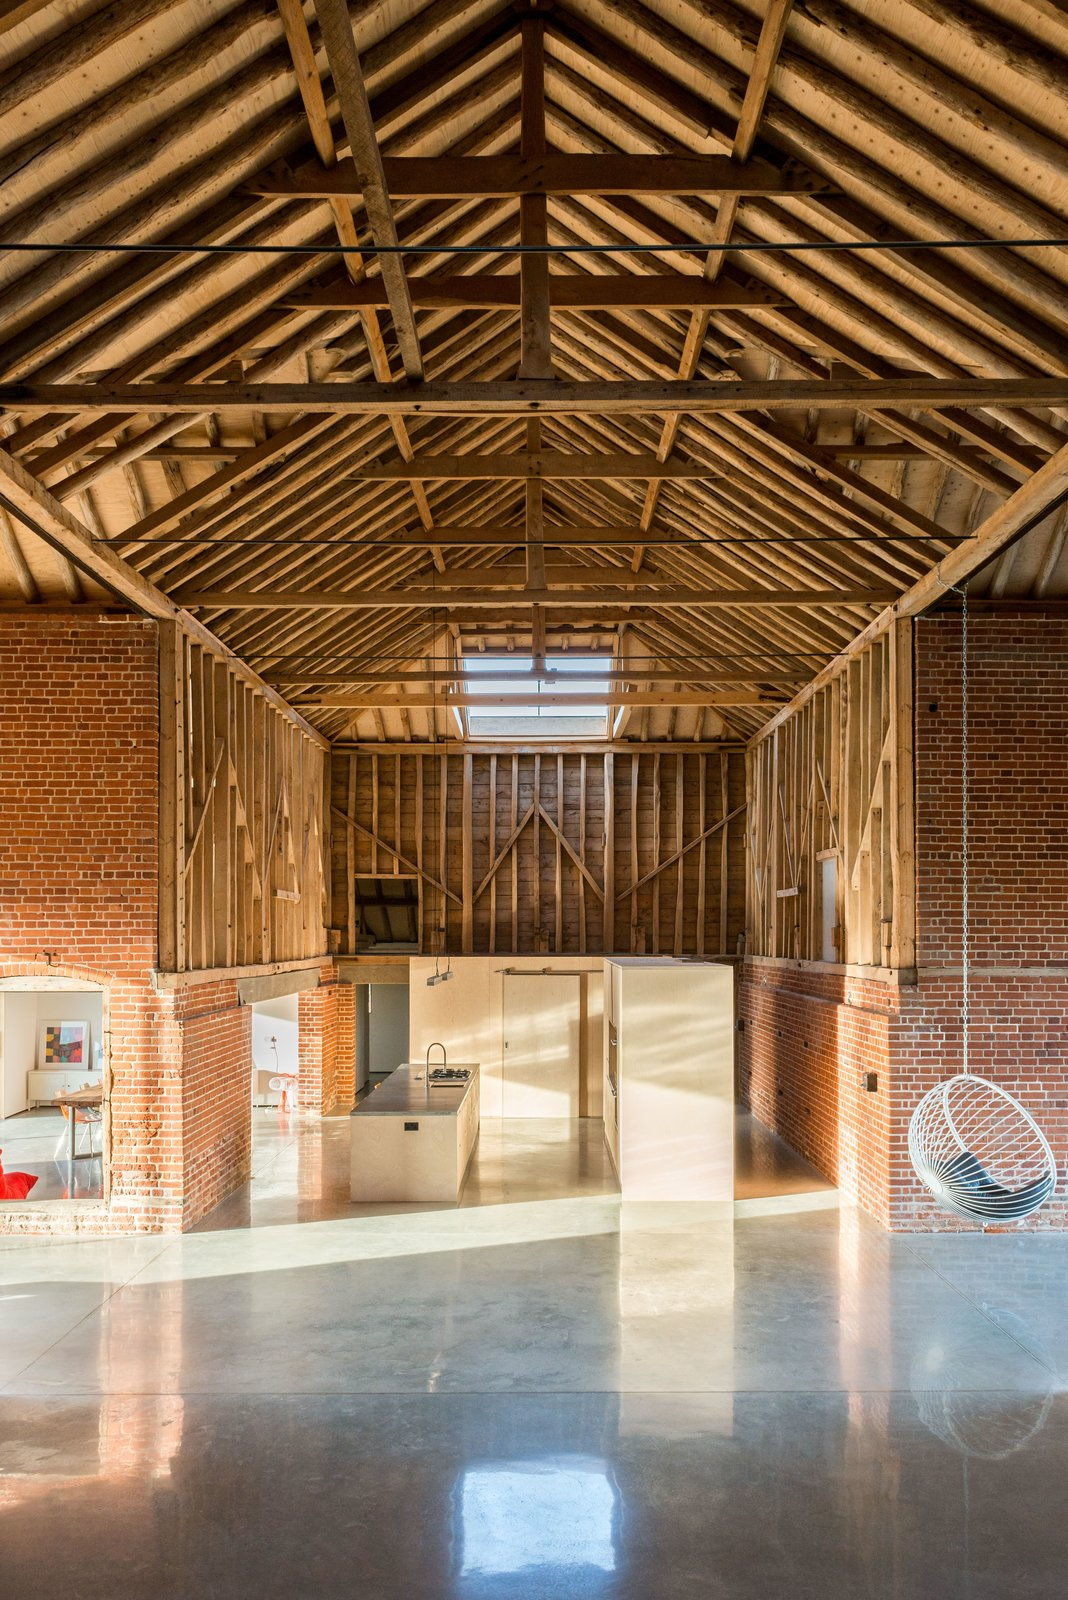 A Suffolk Barn Home With Soaring Ceilings Listed at $1.95M - Photo 10 of 10